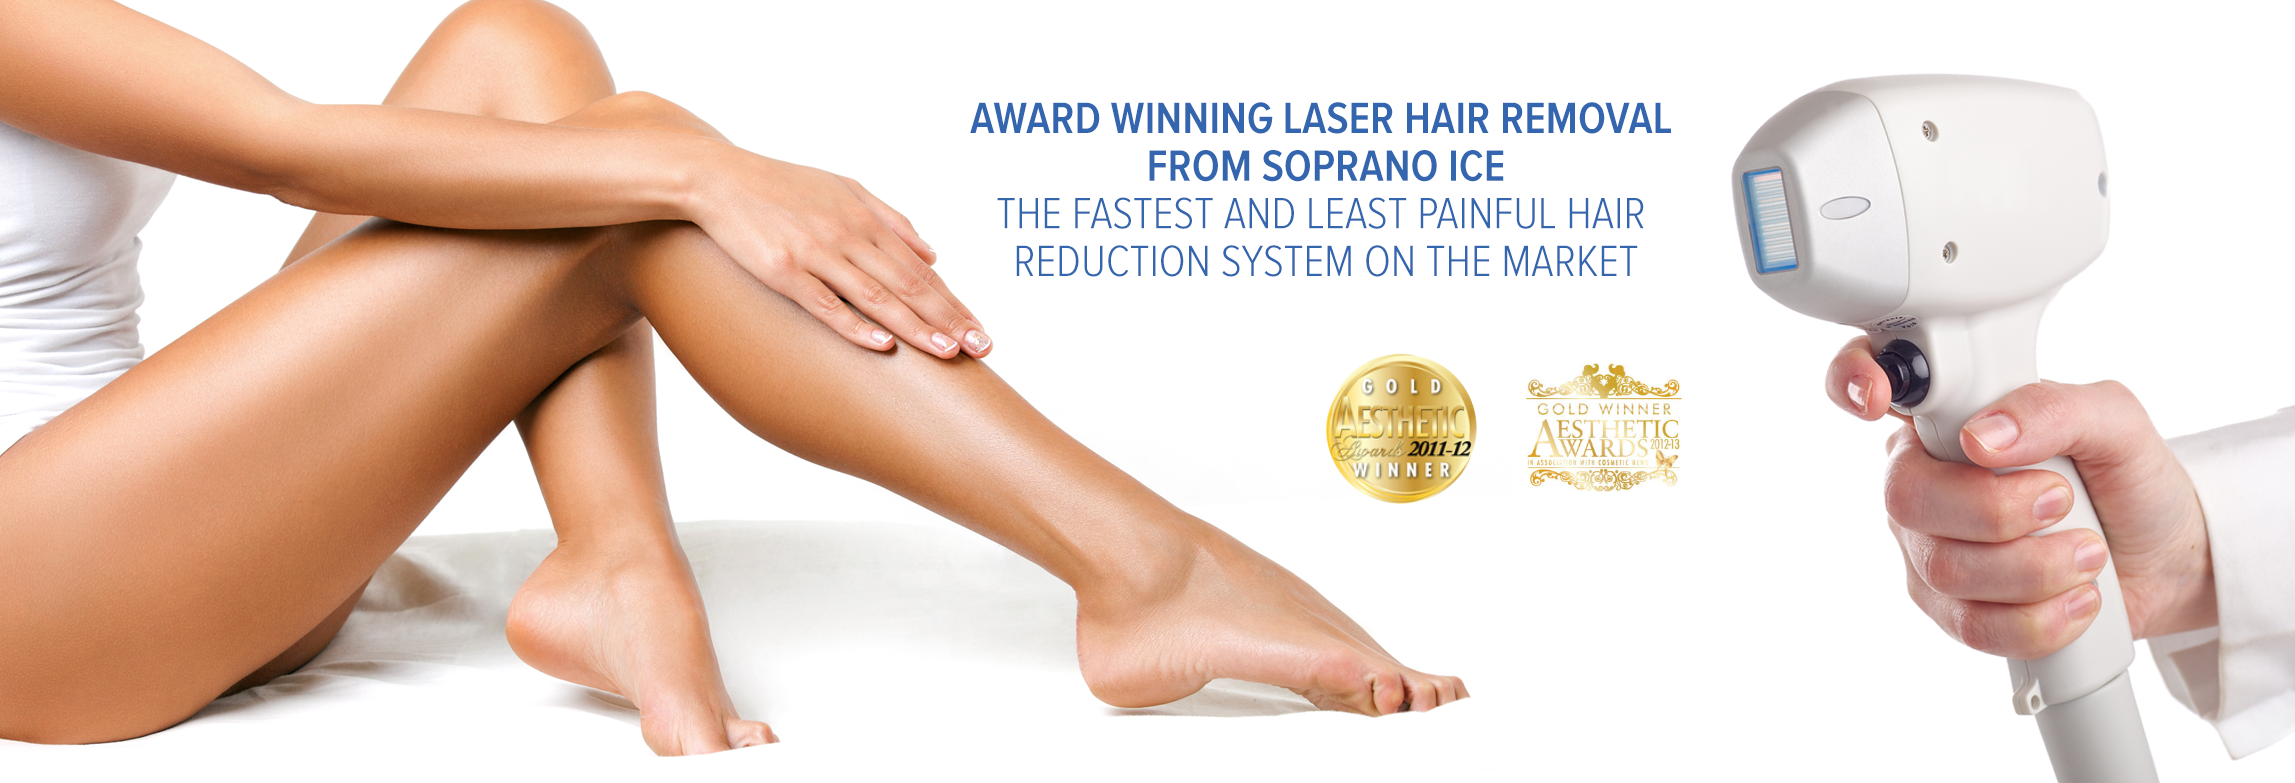 Laser-Hair-Removal-Treatment-Page-Header